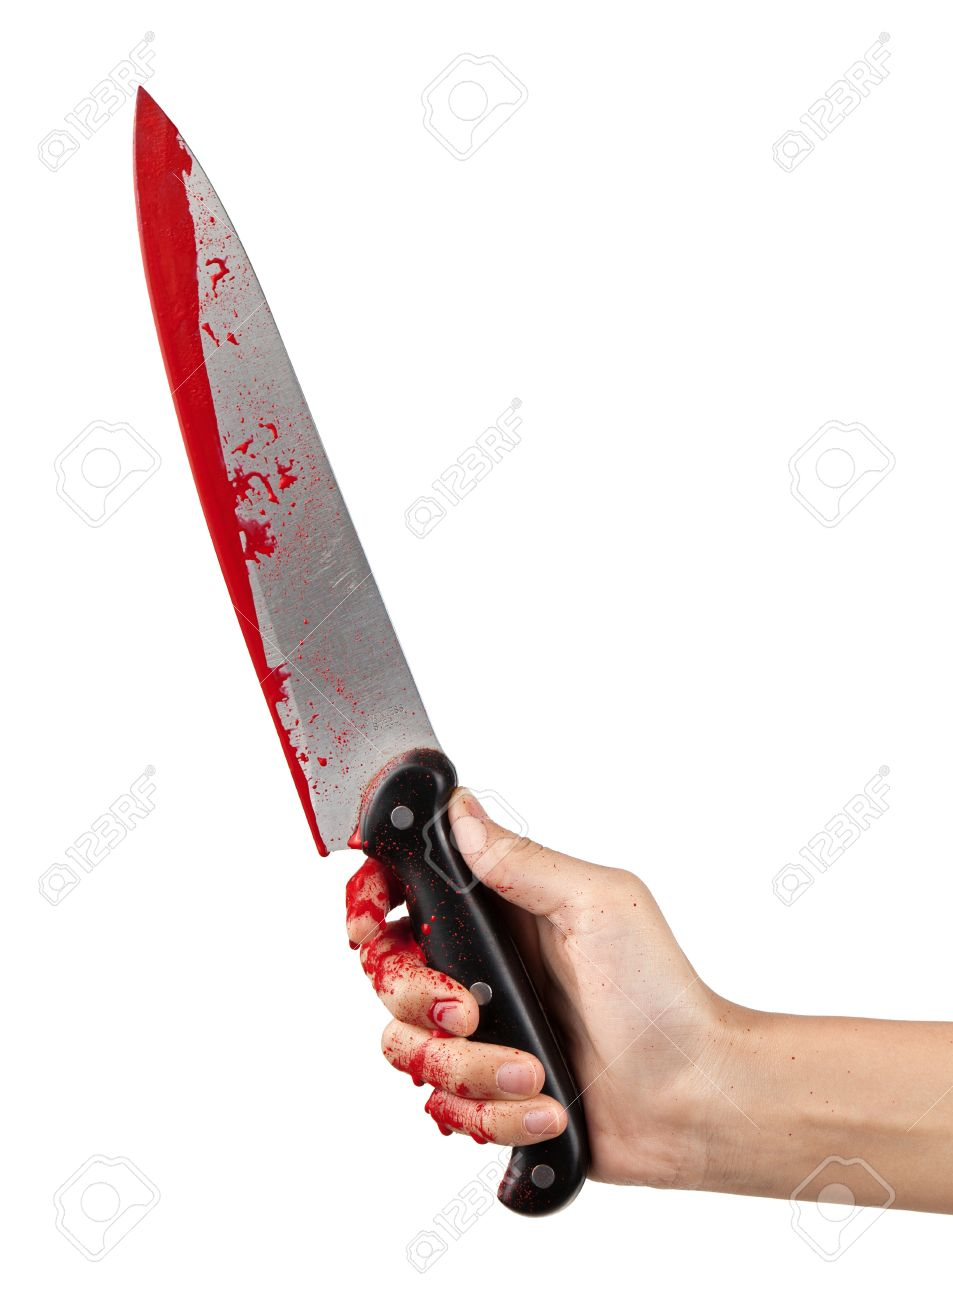 A hand holding a large blood covered knife on a white isolated background. Stock Photo - 13418213